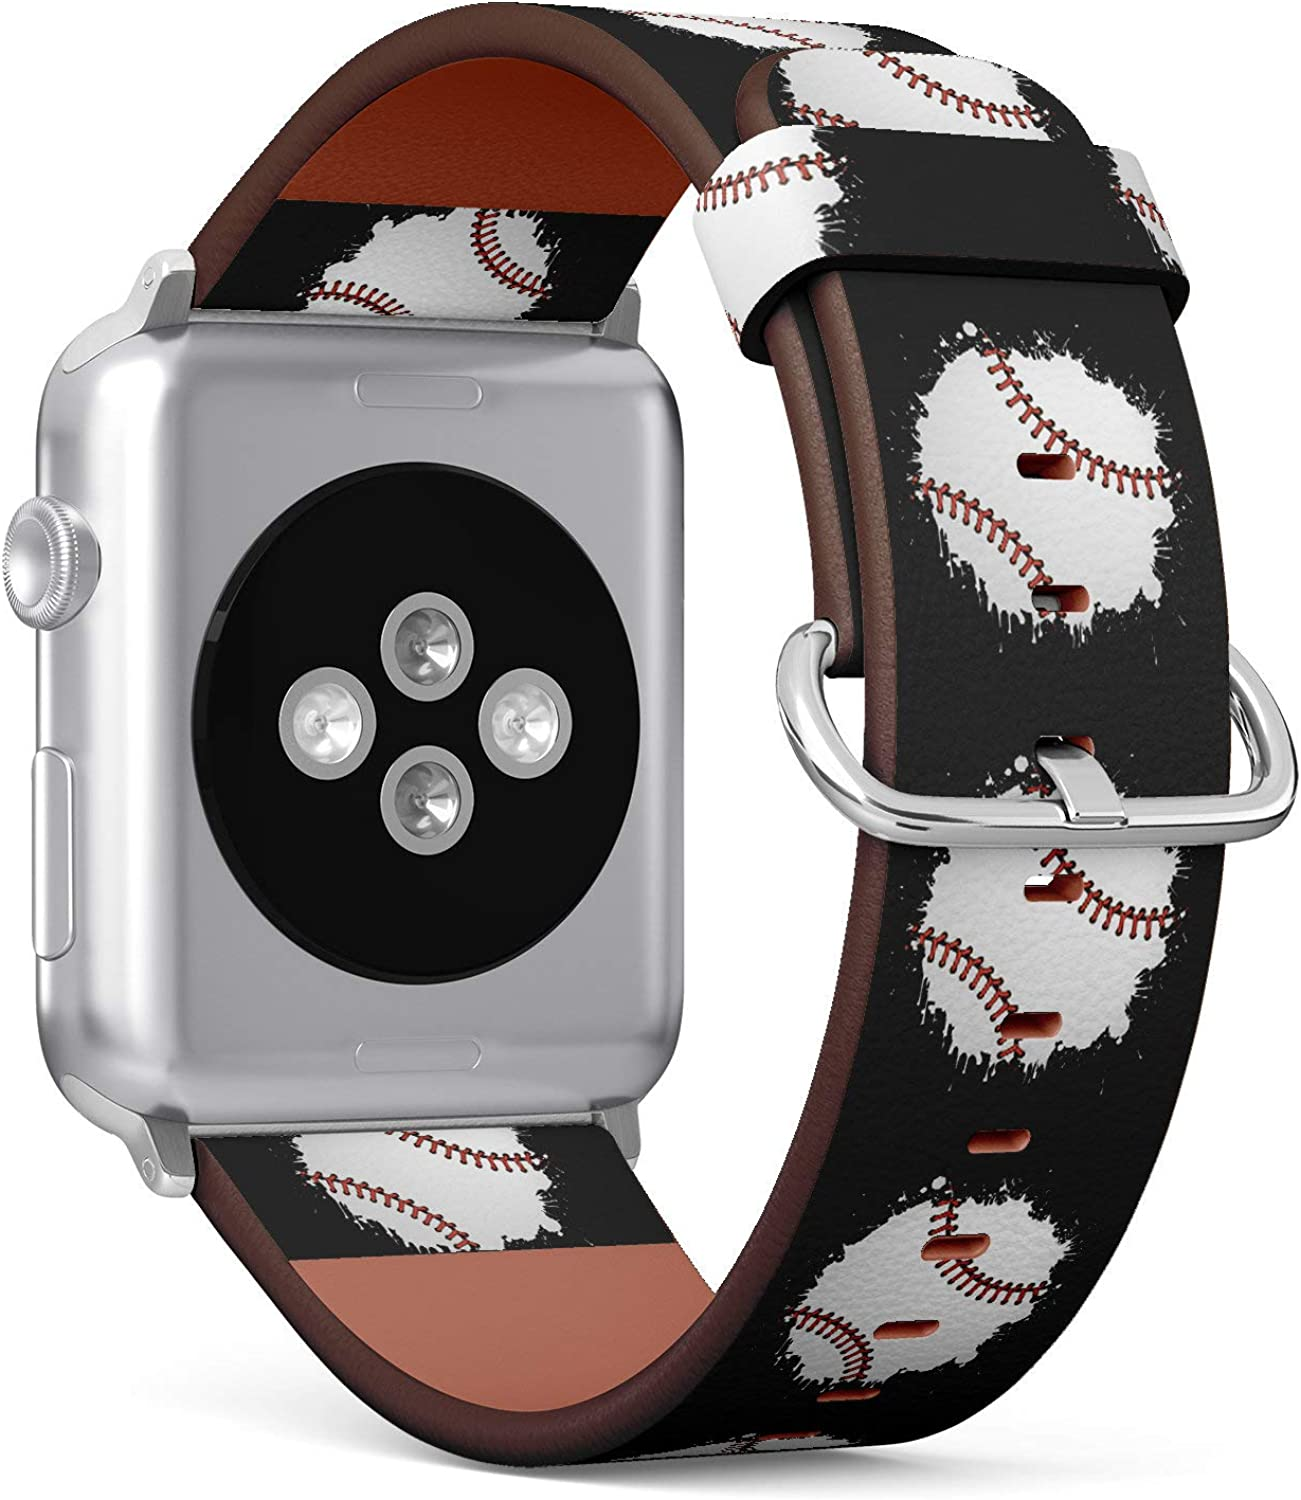 (Water Paint Splash Baseball Illustration) Patterned Leather Wristband Strap for Apple Watch Series 4/3/2/1 gen,Replacement for iWatch 42mm / 44mm Bands